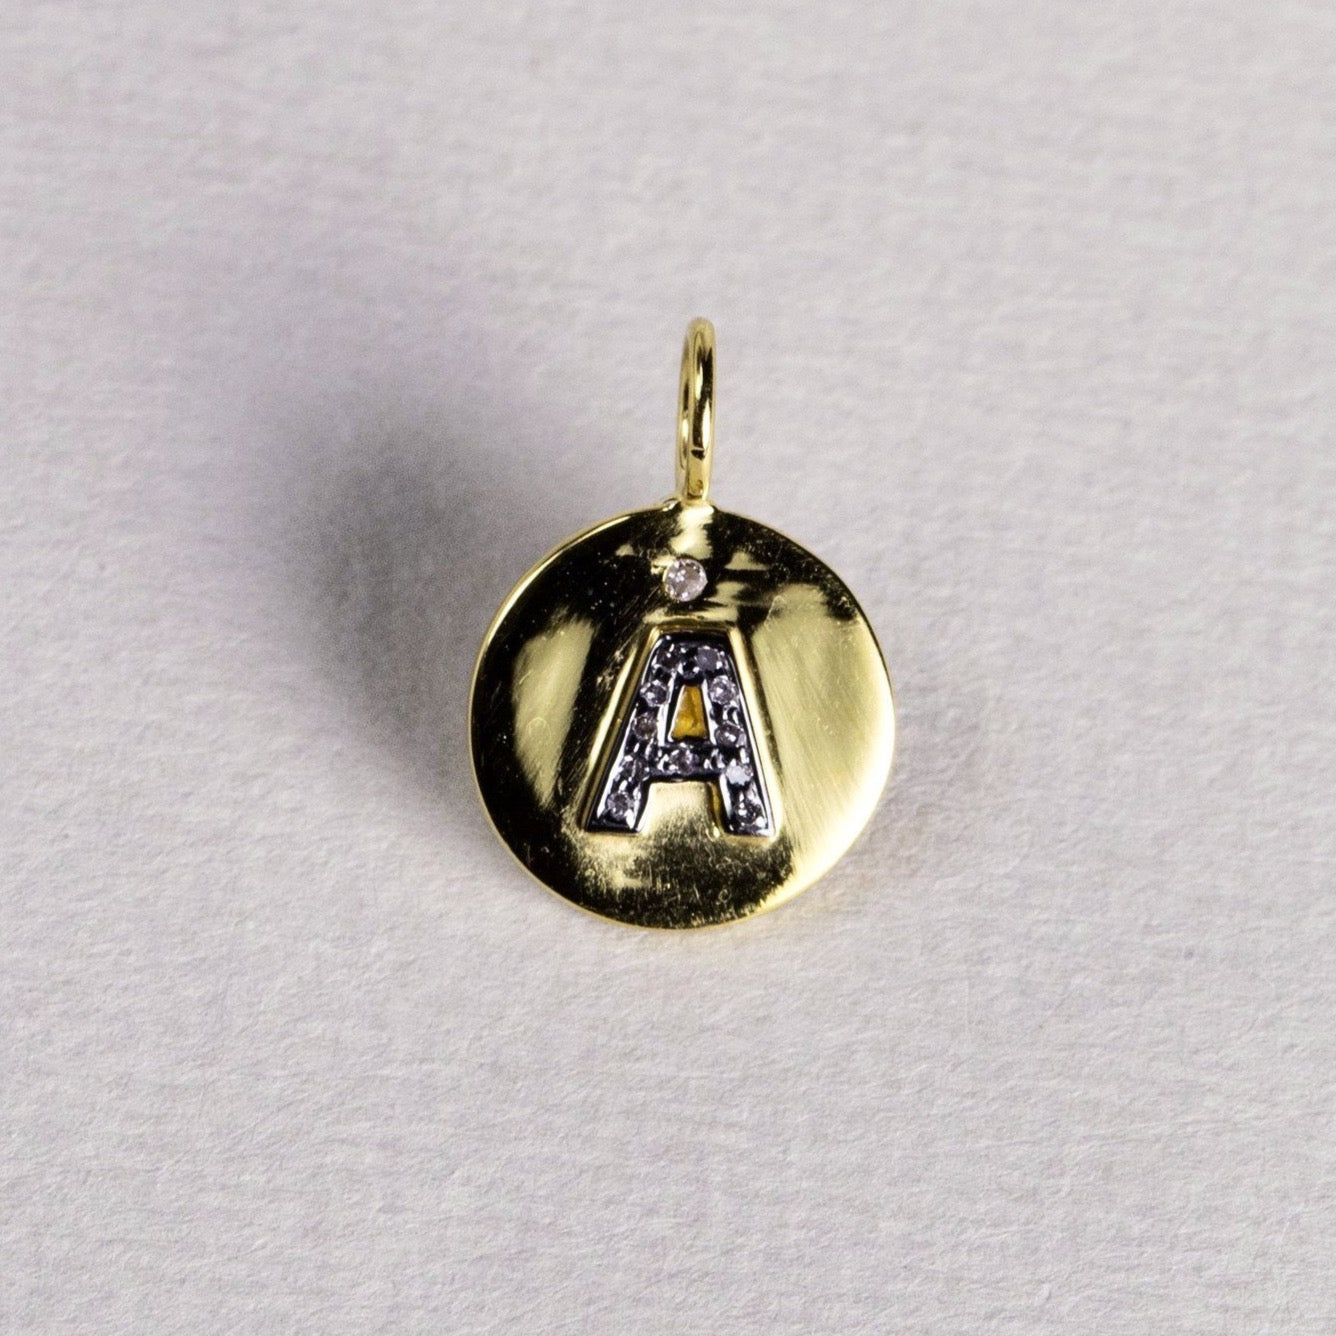 made of 18 carat gold disc with polished finish these initials are as adorable as they can be!